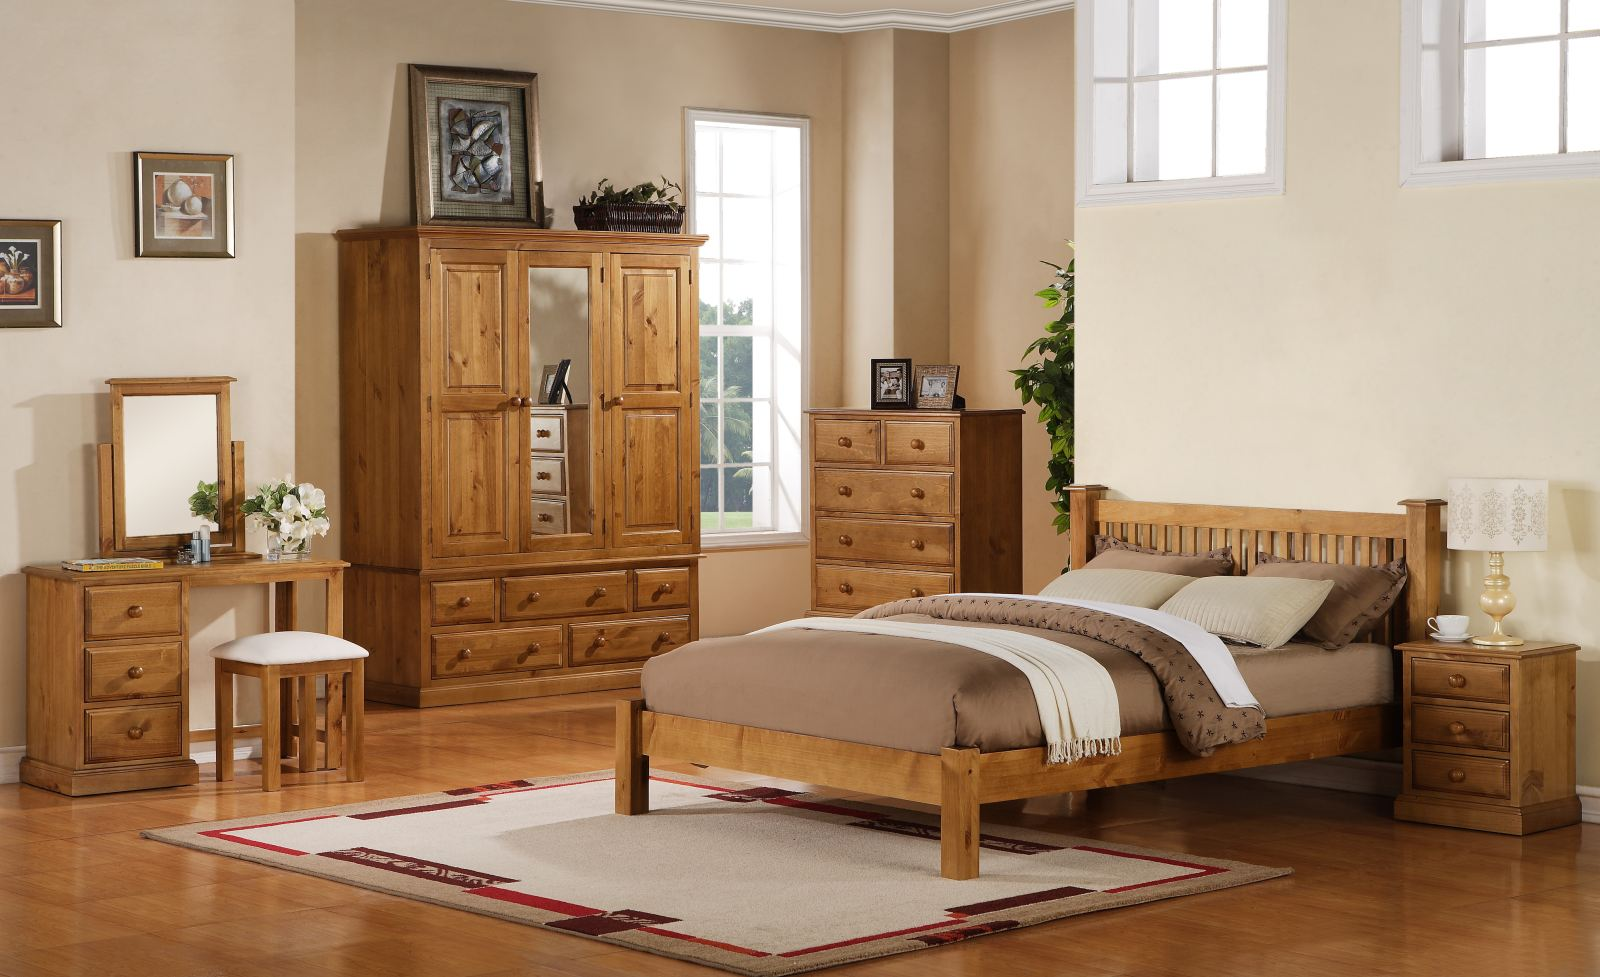 wooden furniture hub in pine furniture comments off on pine bedroom